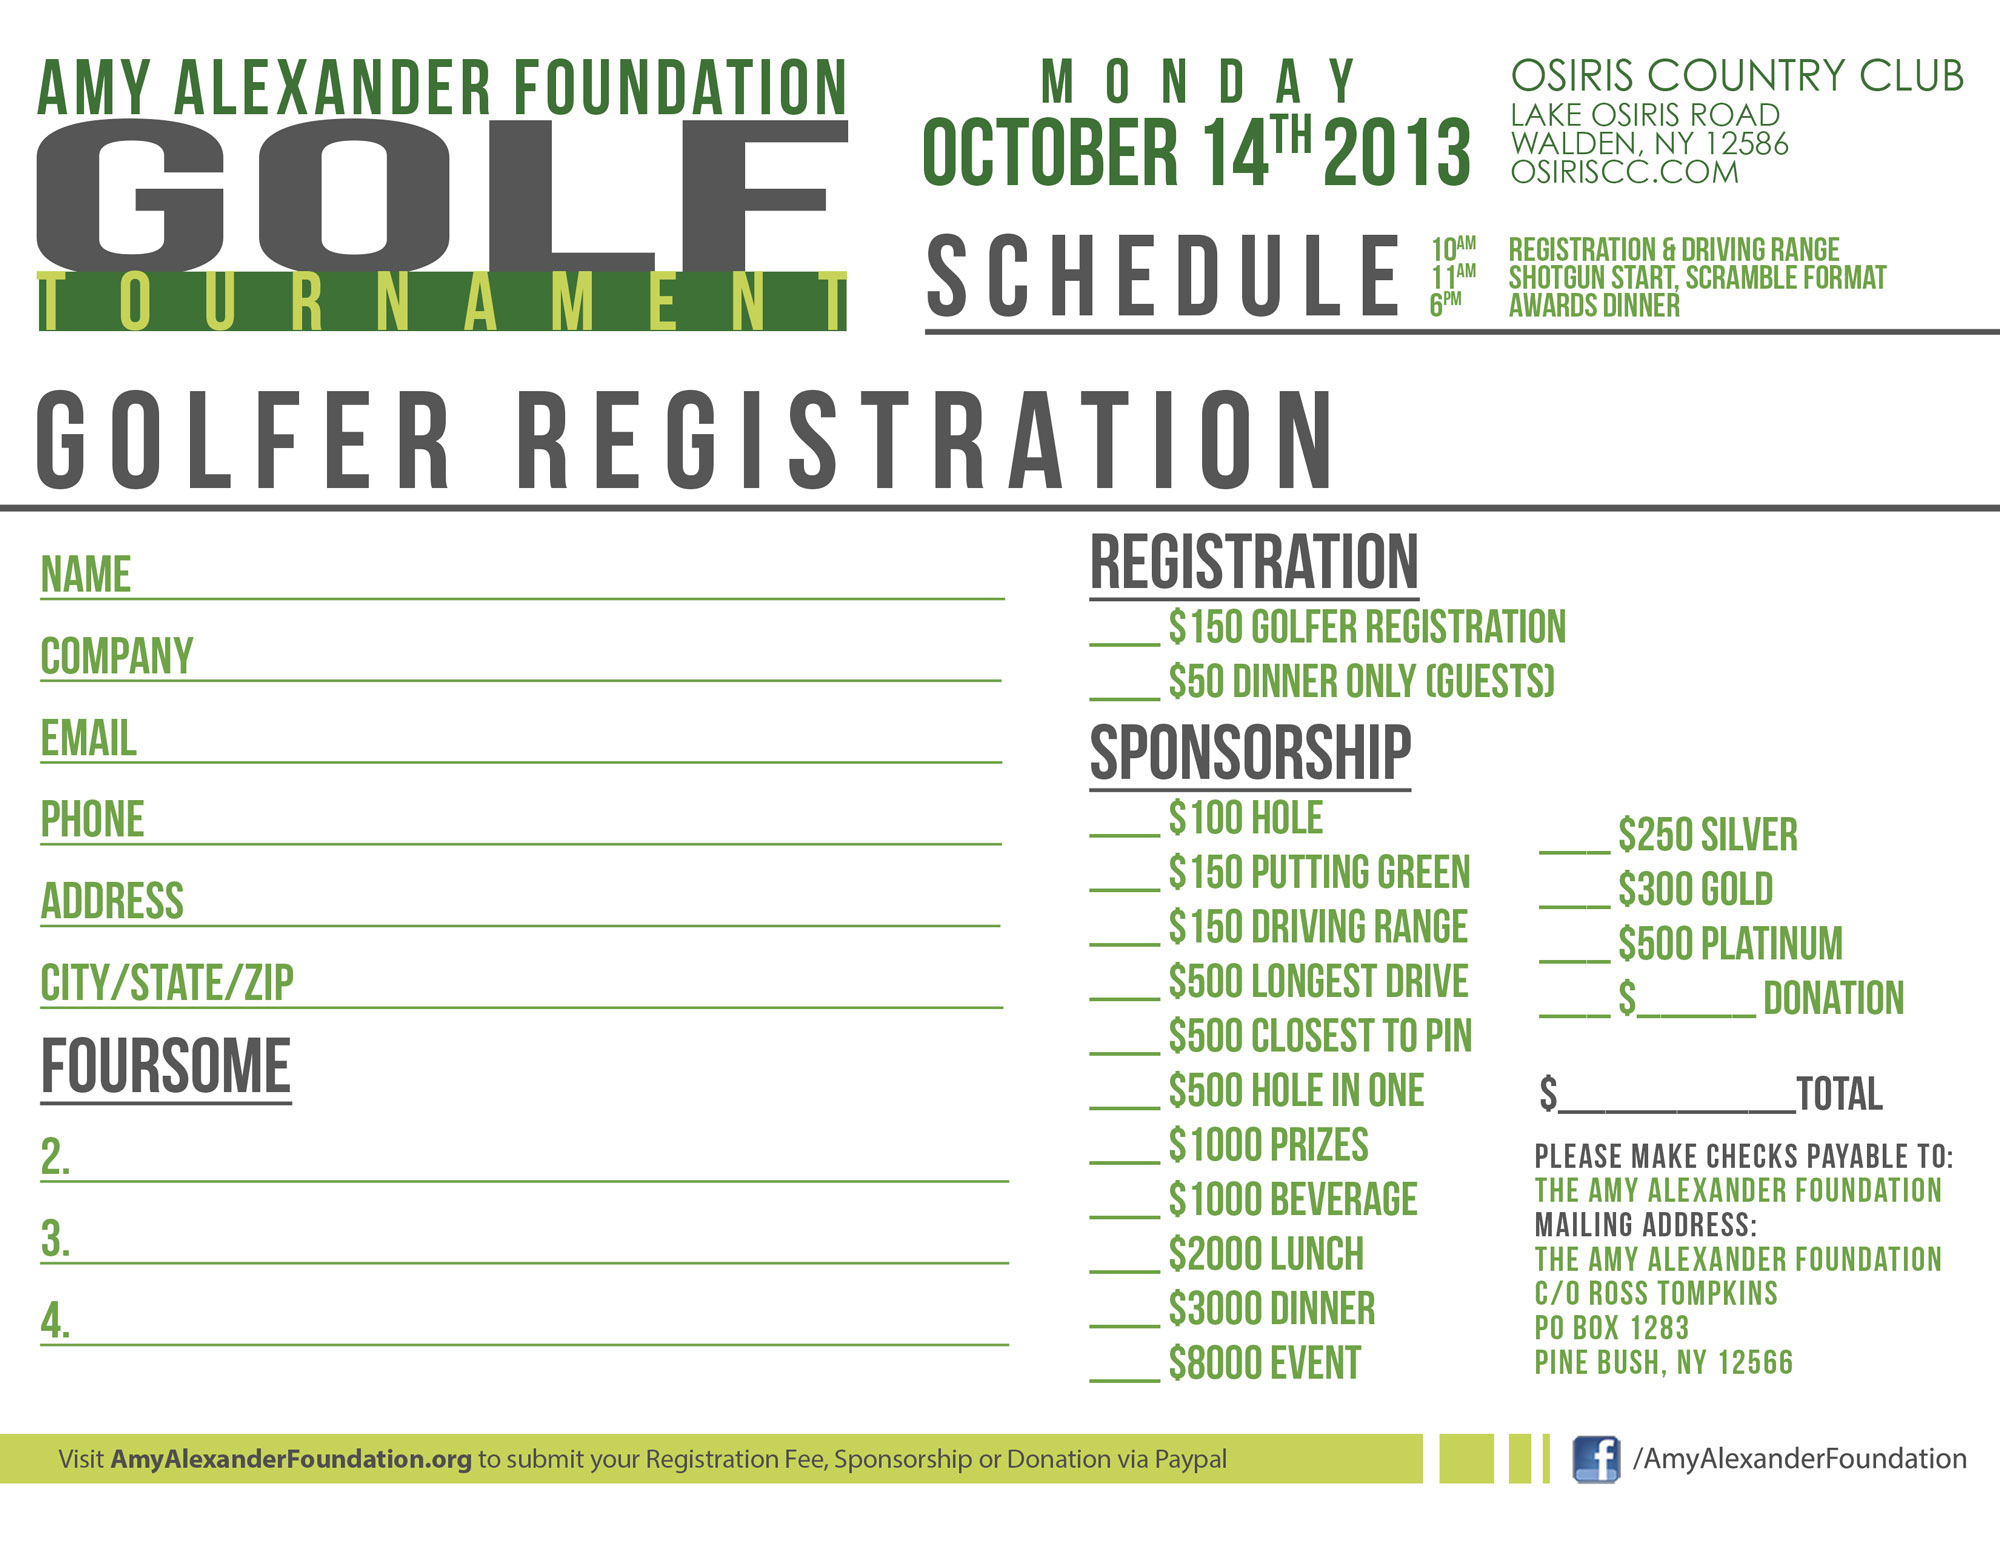 DOWNLOAD THE GOLFER REGISTRATION FORM